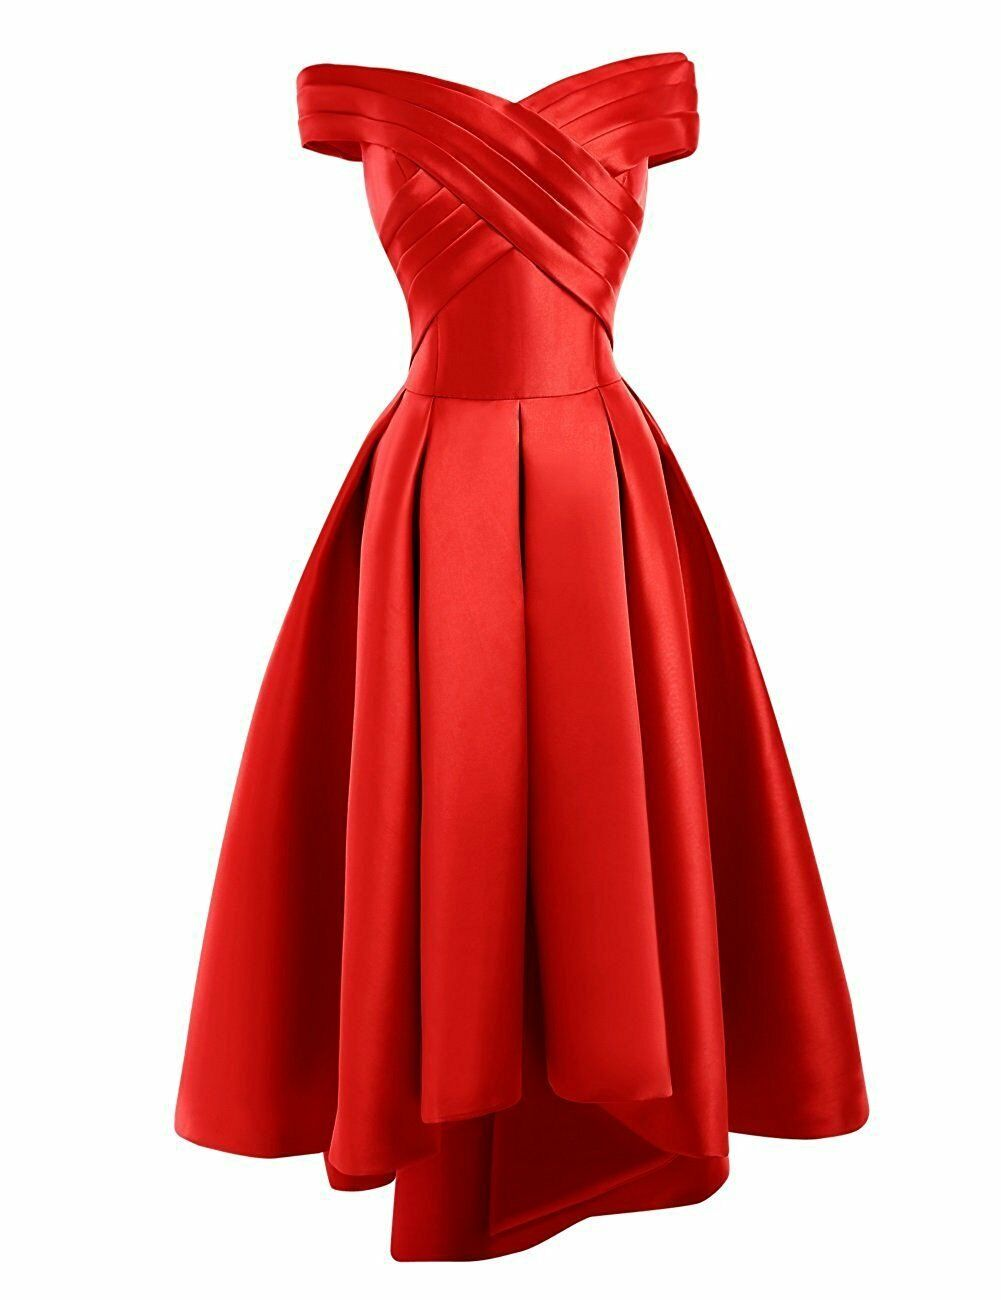 Bethany red  duchess satin on off shoulder hi lo bridesmaid evening prom wedding bridal dress loulous bridal boutique ltd uk